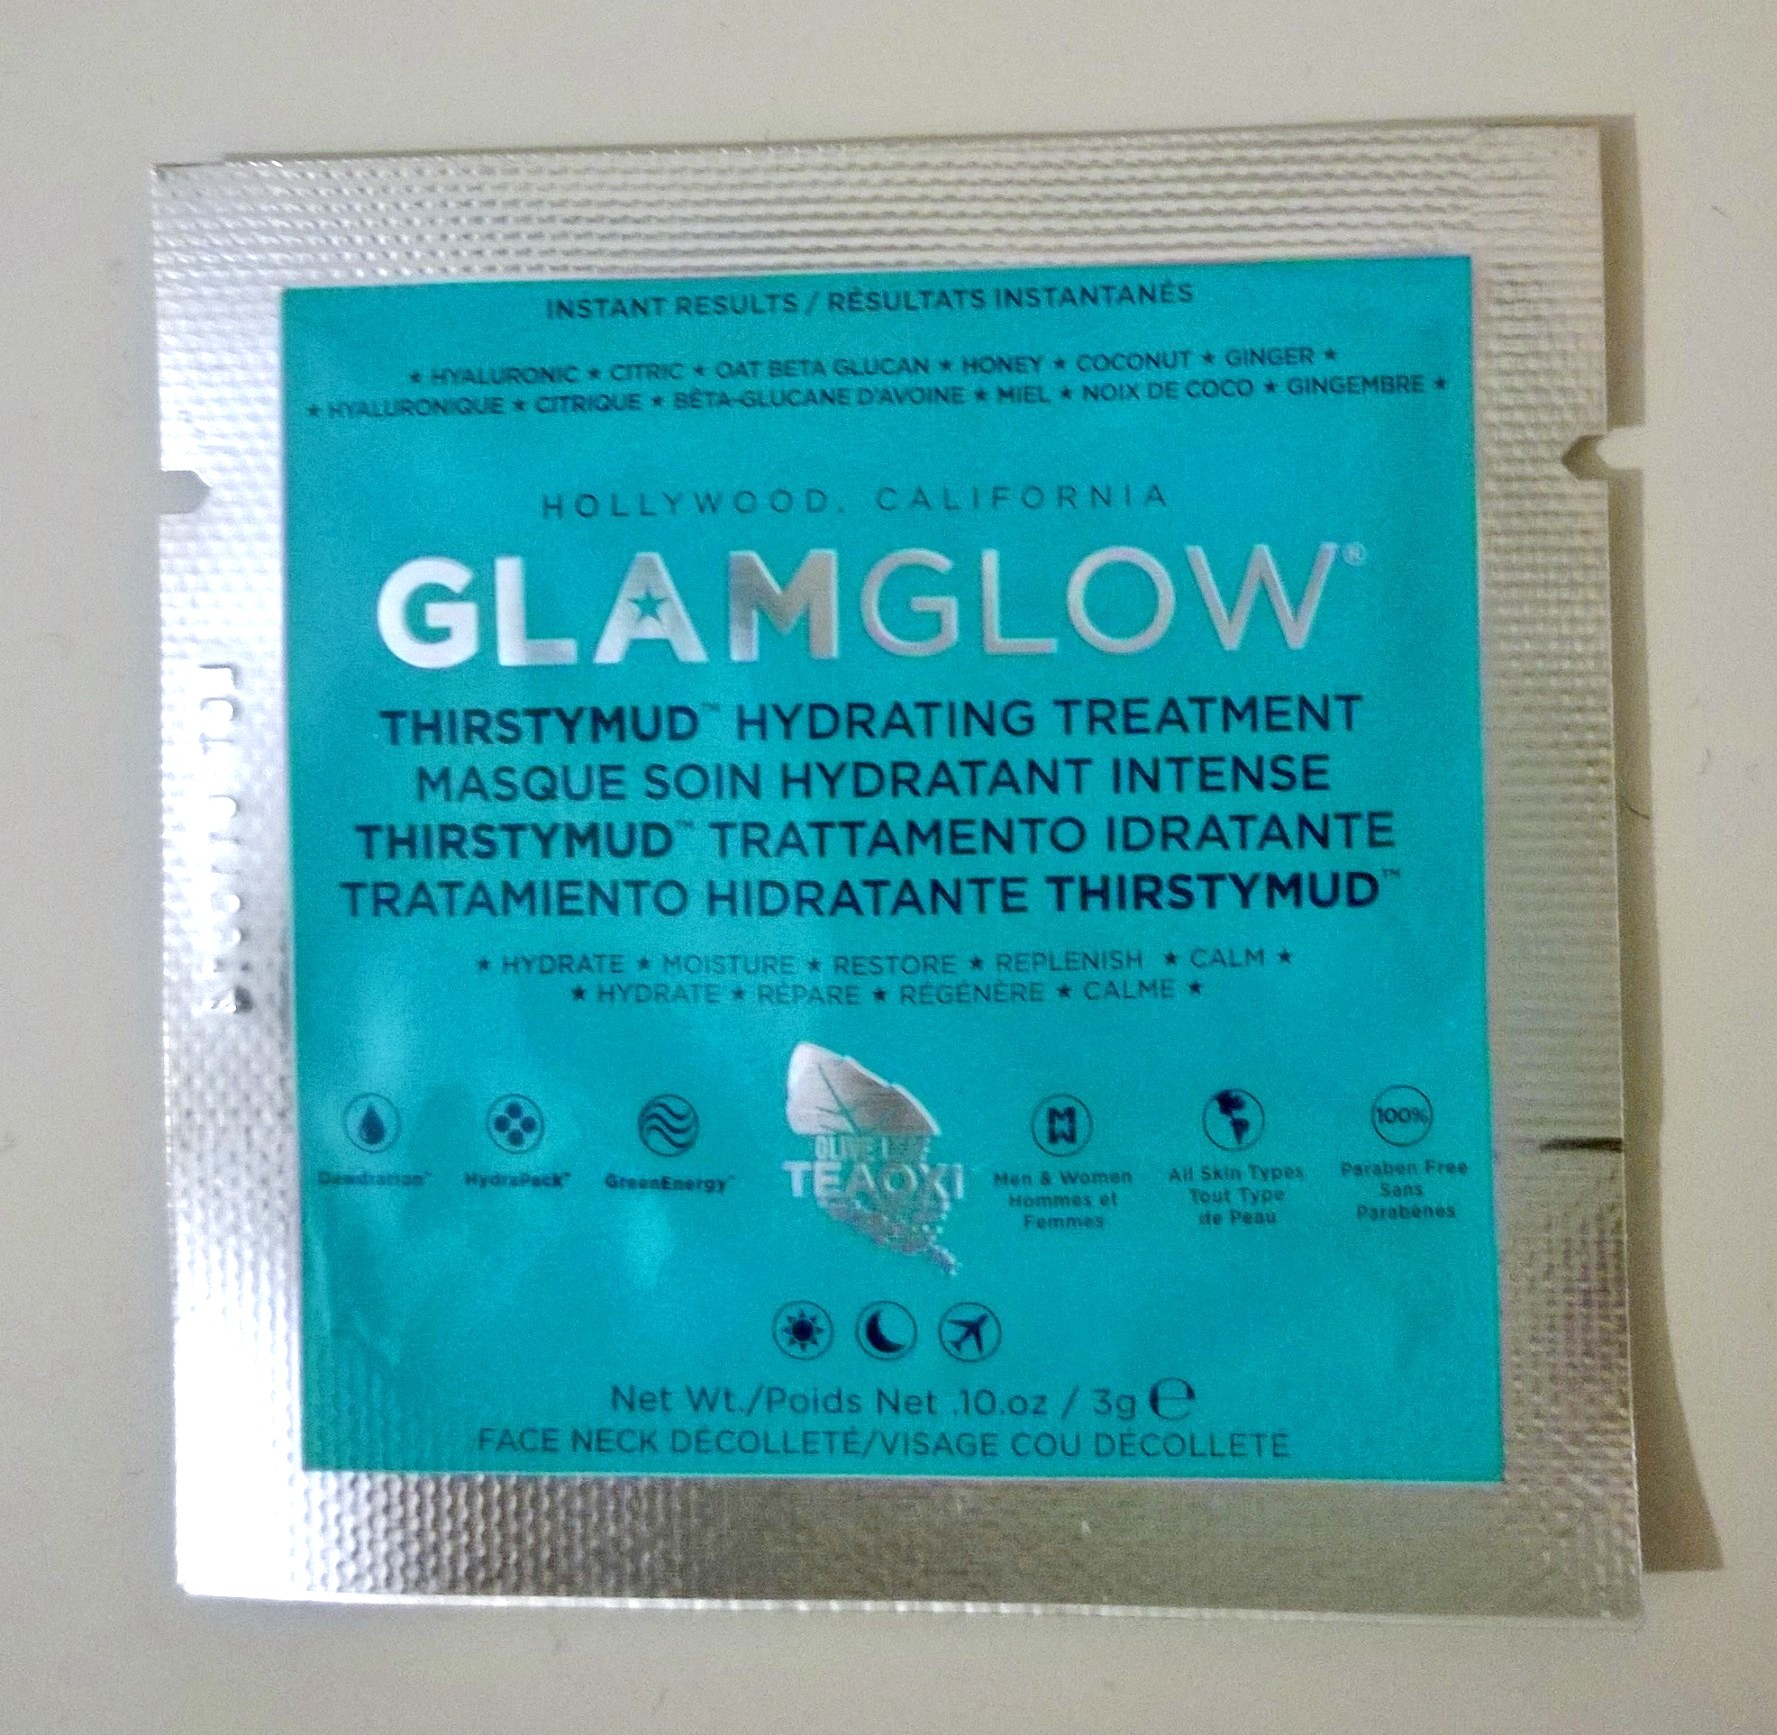 GLAMGLOW THIRSTYMUD HYDRATING TREATMENT MASK: REVIEW | Ah Sure Tis ...